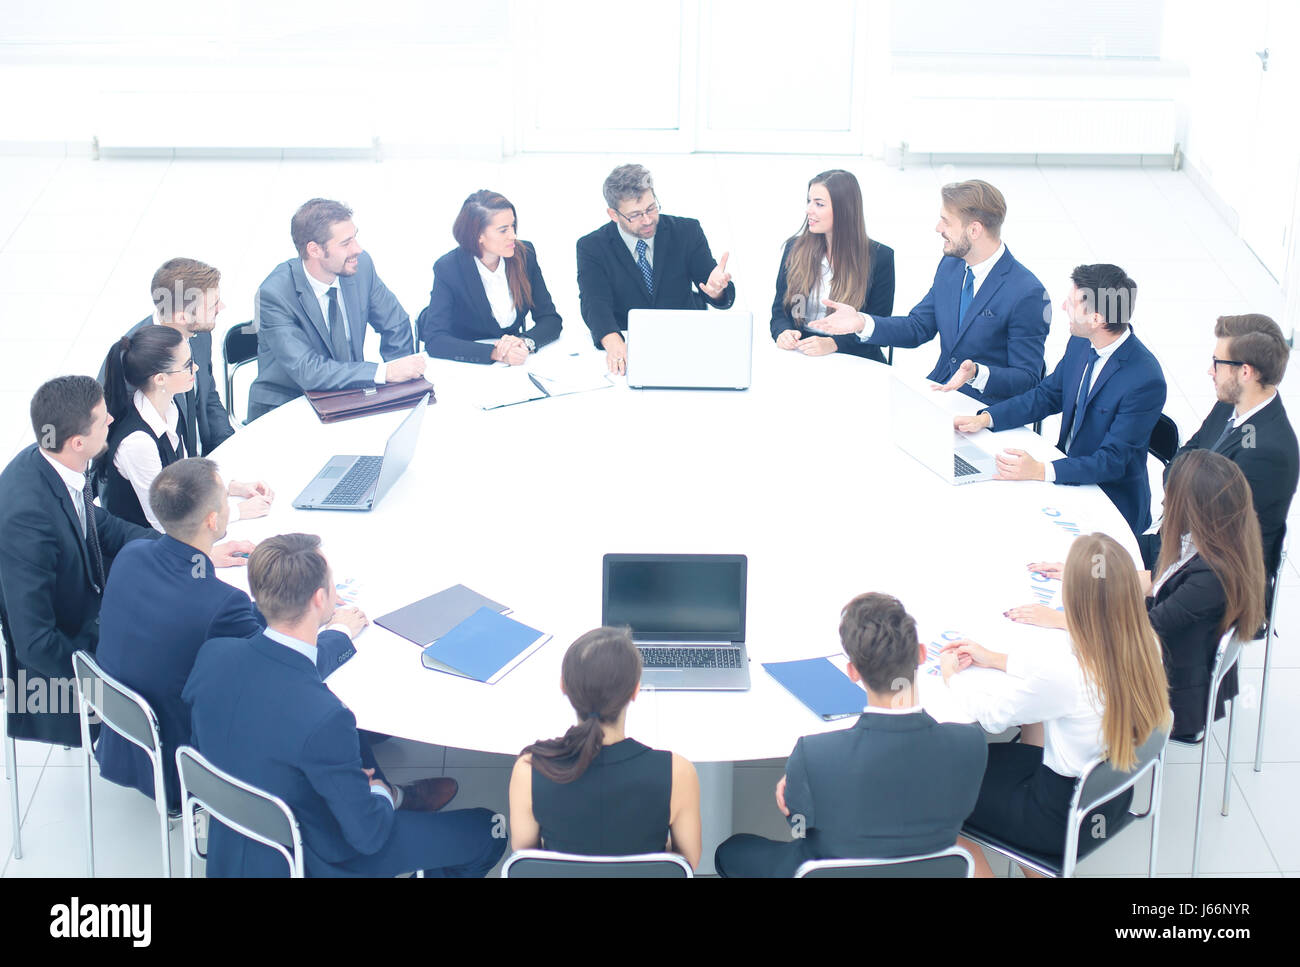 Merveilleux Participants In A Business Meeting Sitting At A Round Table And Listen To  The Debate Of Business Leaders In The Discussion Of The Financial Agreement.